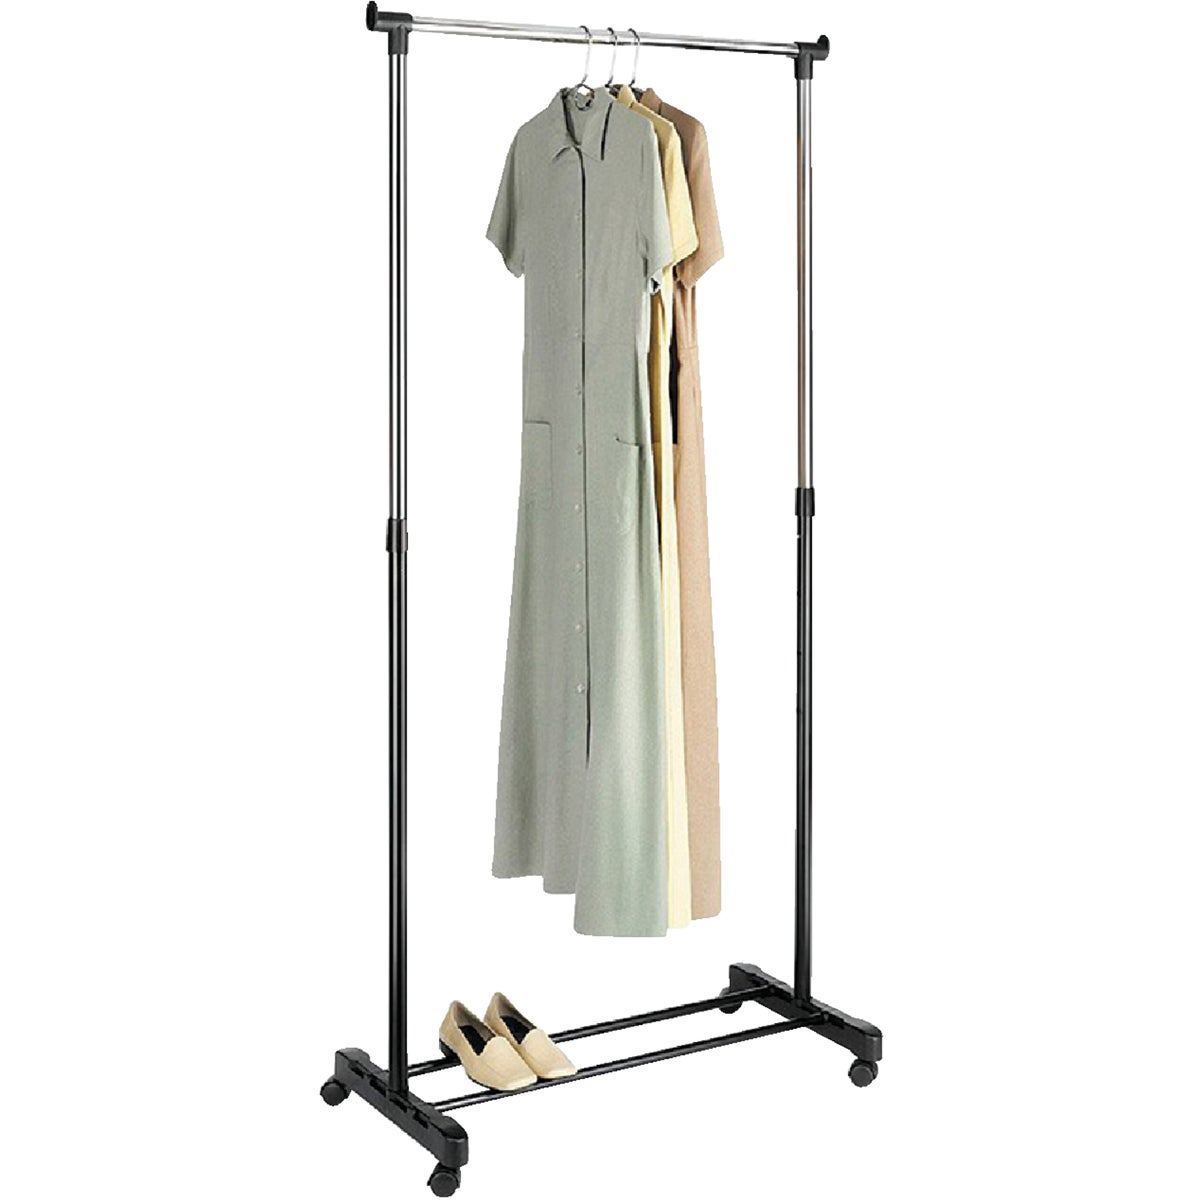 GARMENT RACK - 6021-3539 by Whitmor Mfg